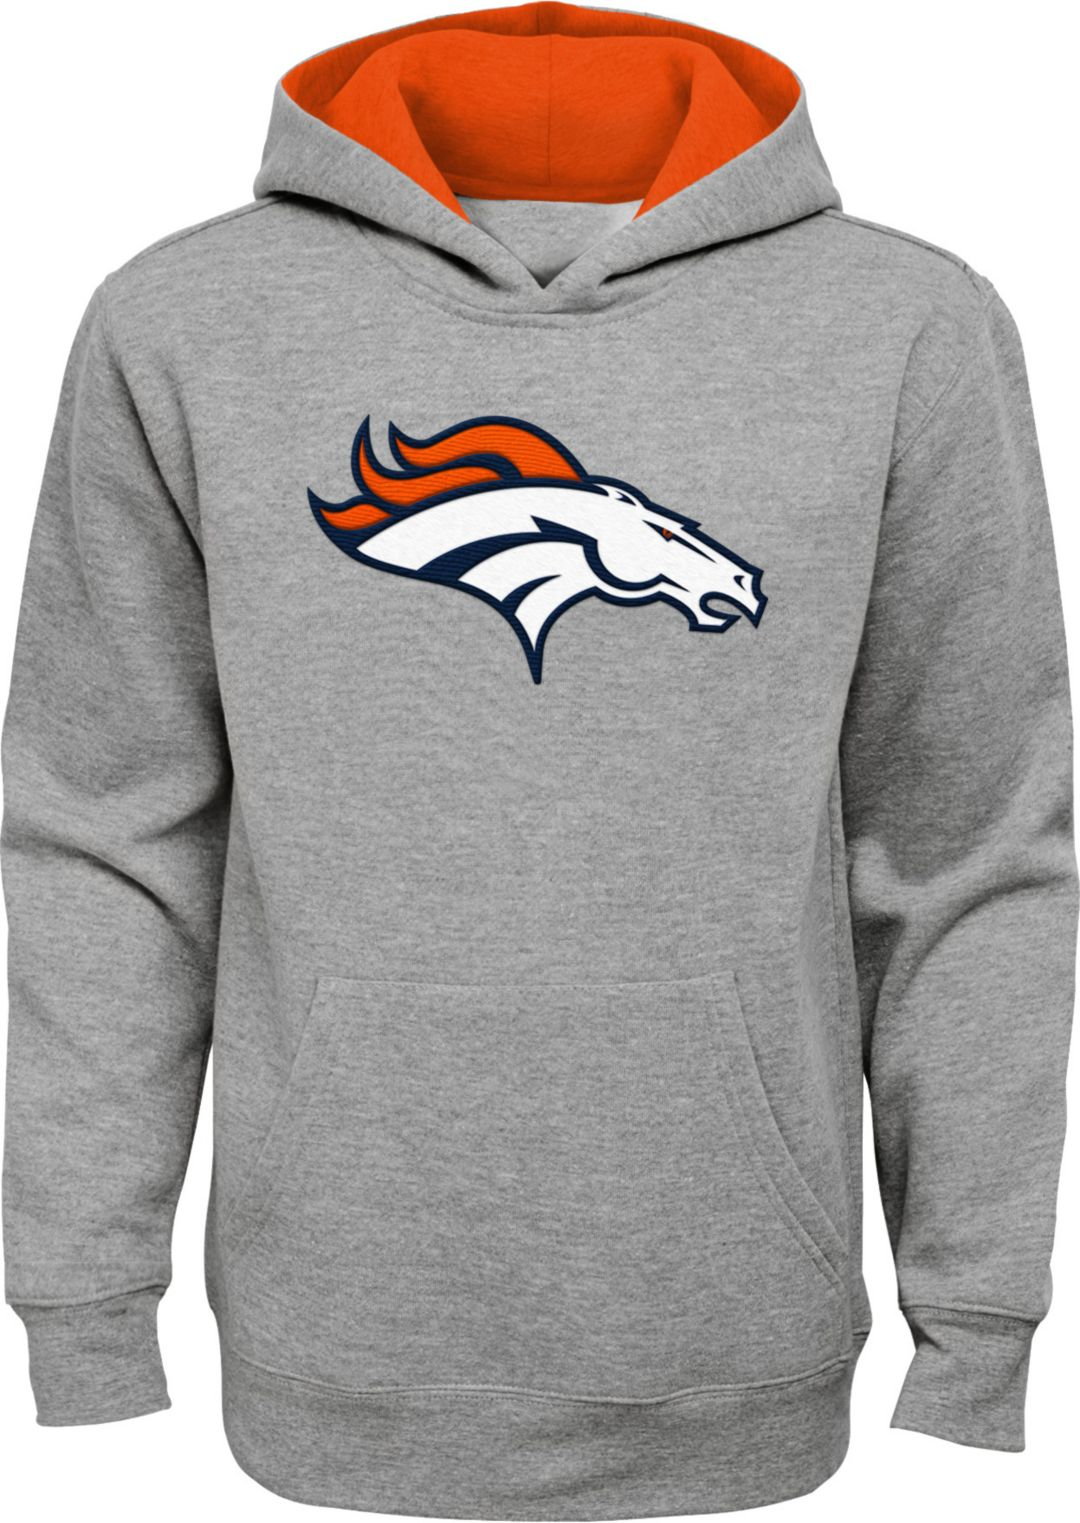 best sneakers 6e449 50a5d NFL Team Apparel Youth Denver Broncos Prime Grey Pullover Hoodie